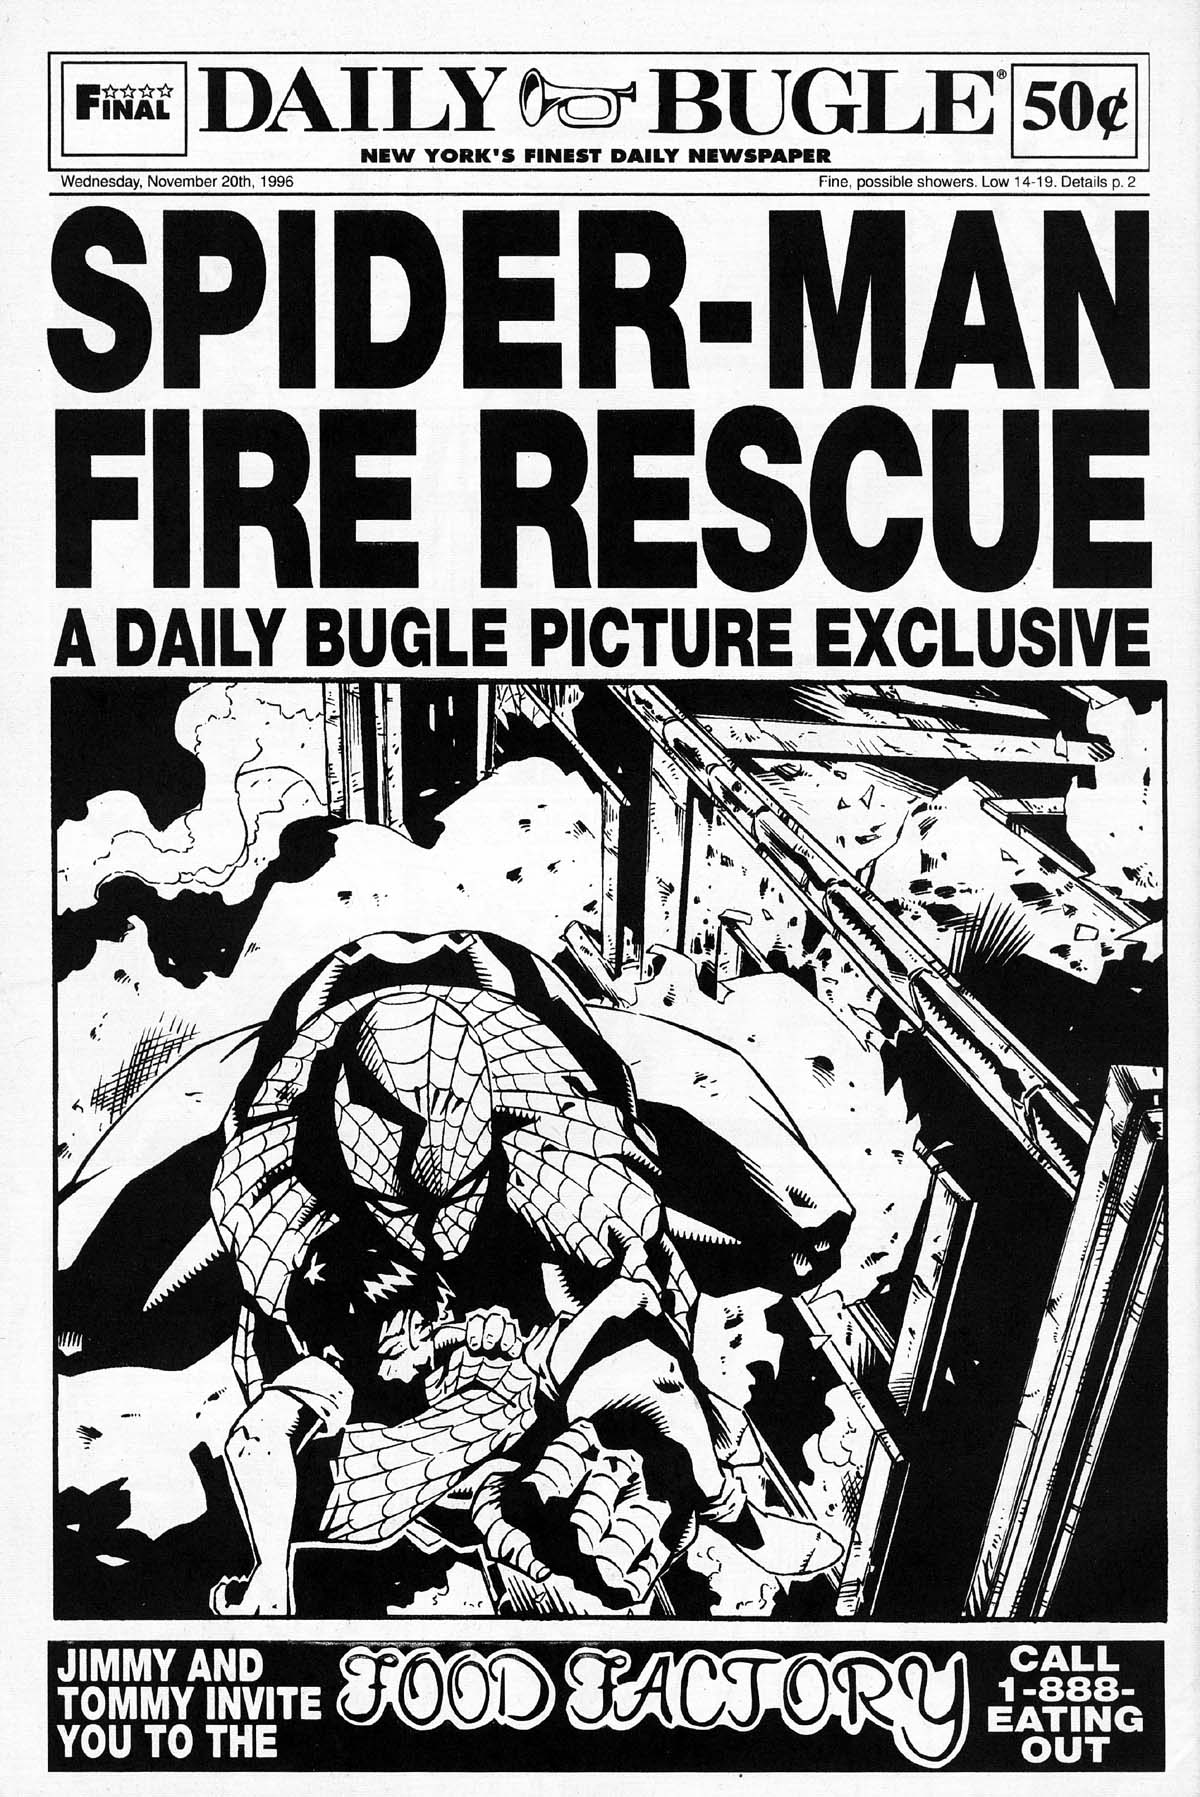 Read online Daily Bugle (1996) comic -  Issue #2 - 30